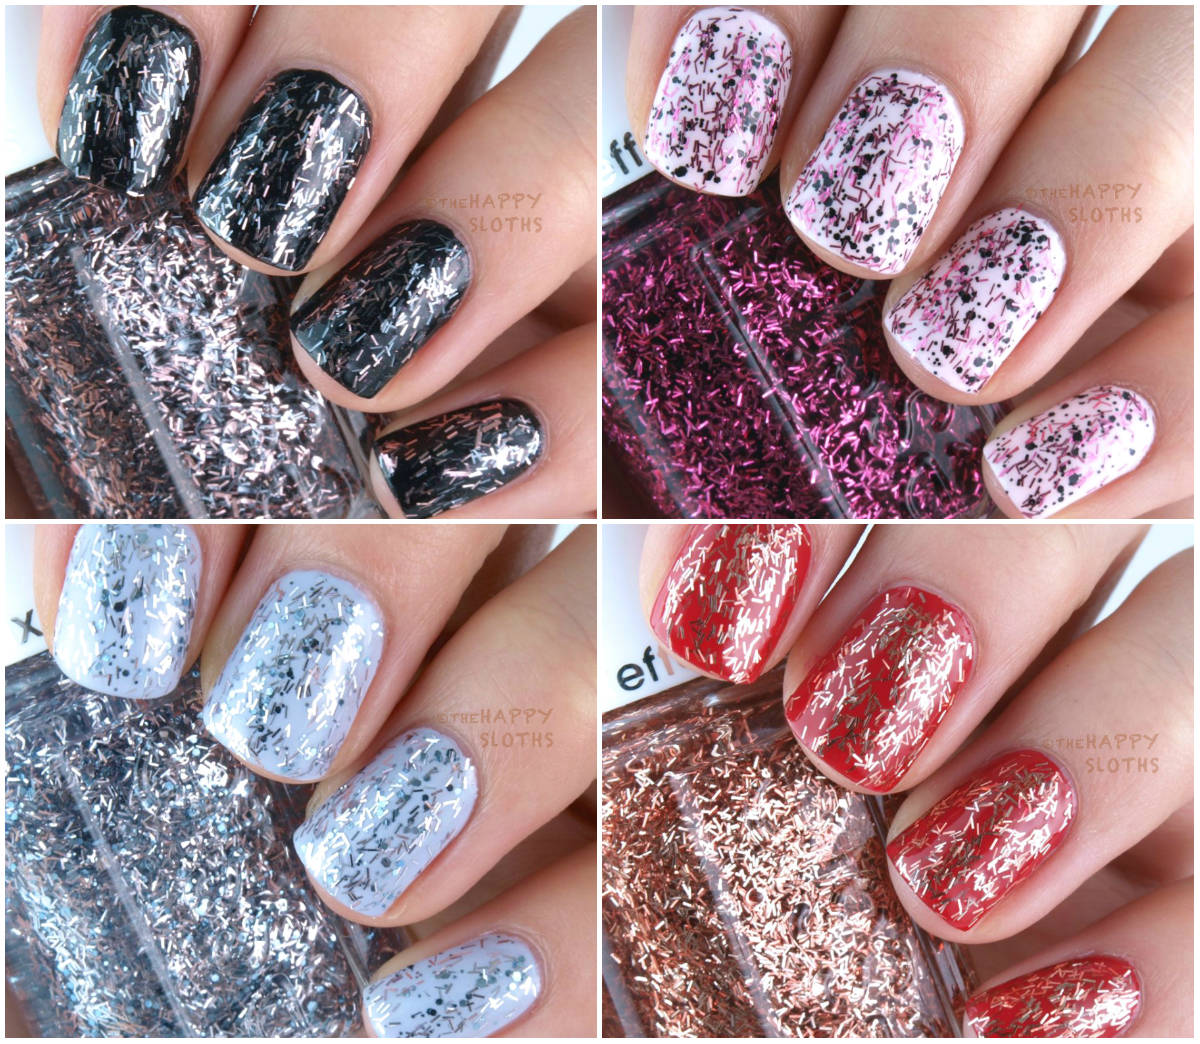 Essie Luxe Effects 2015 Collection: Review and Swatches | The Happy ...